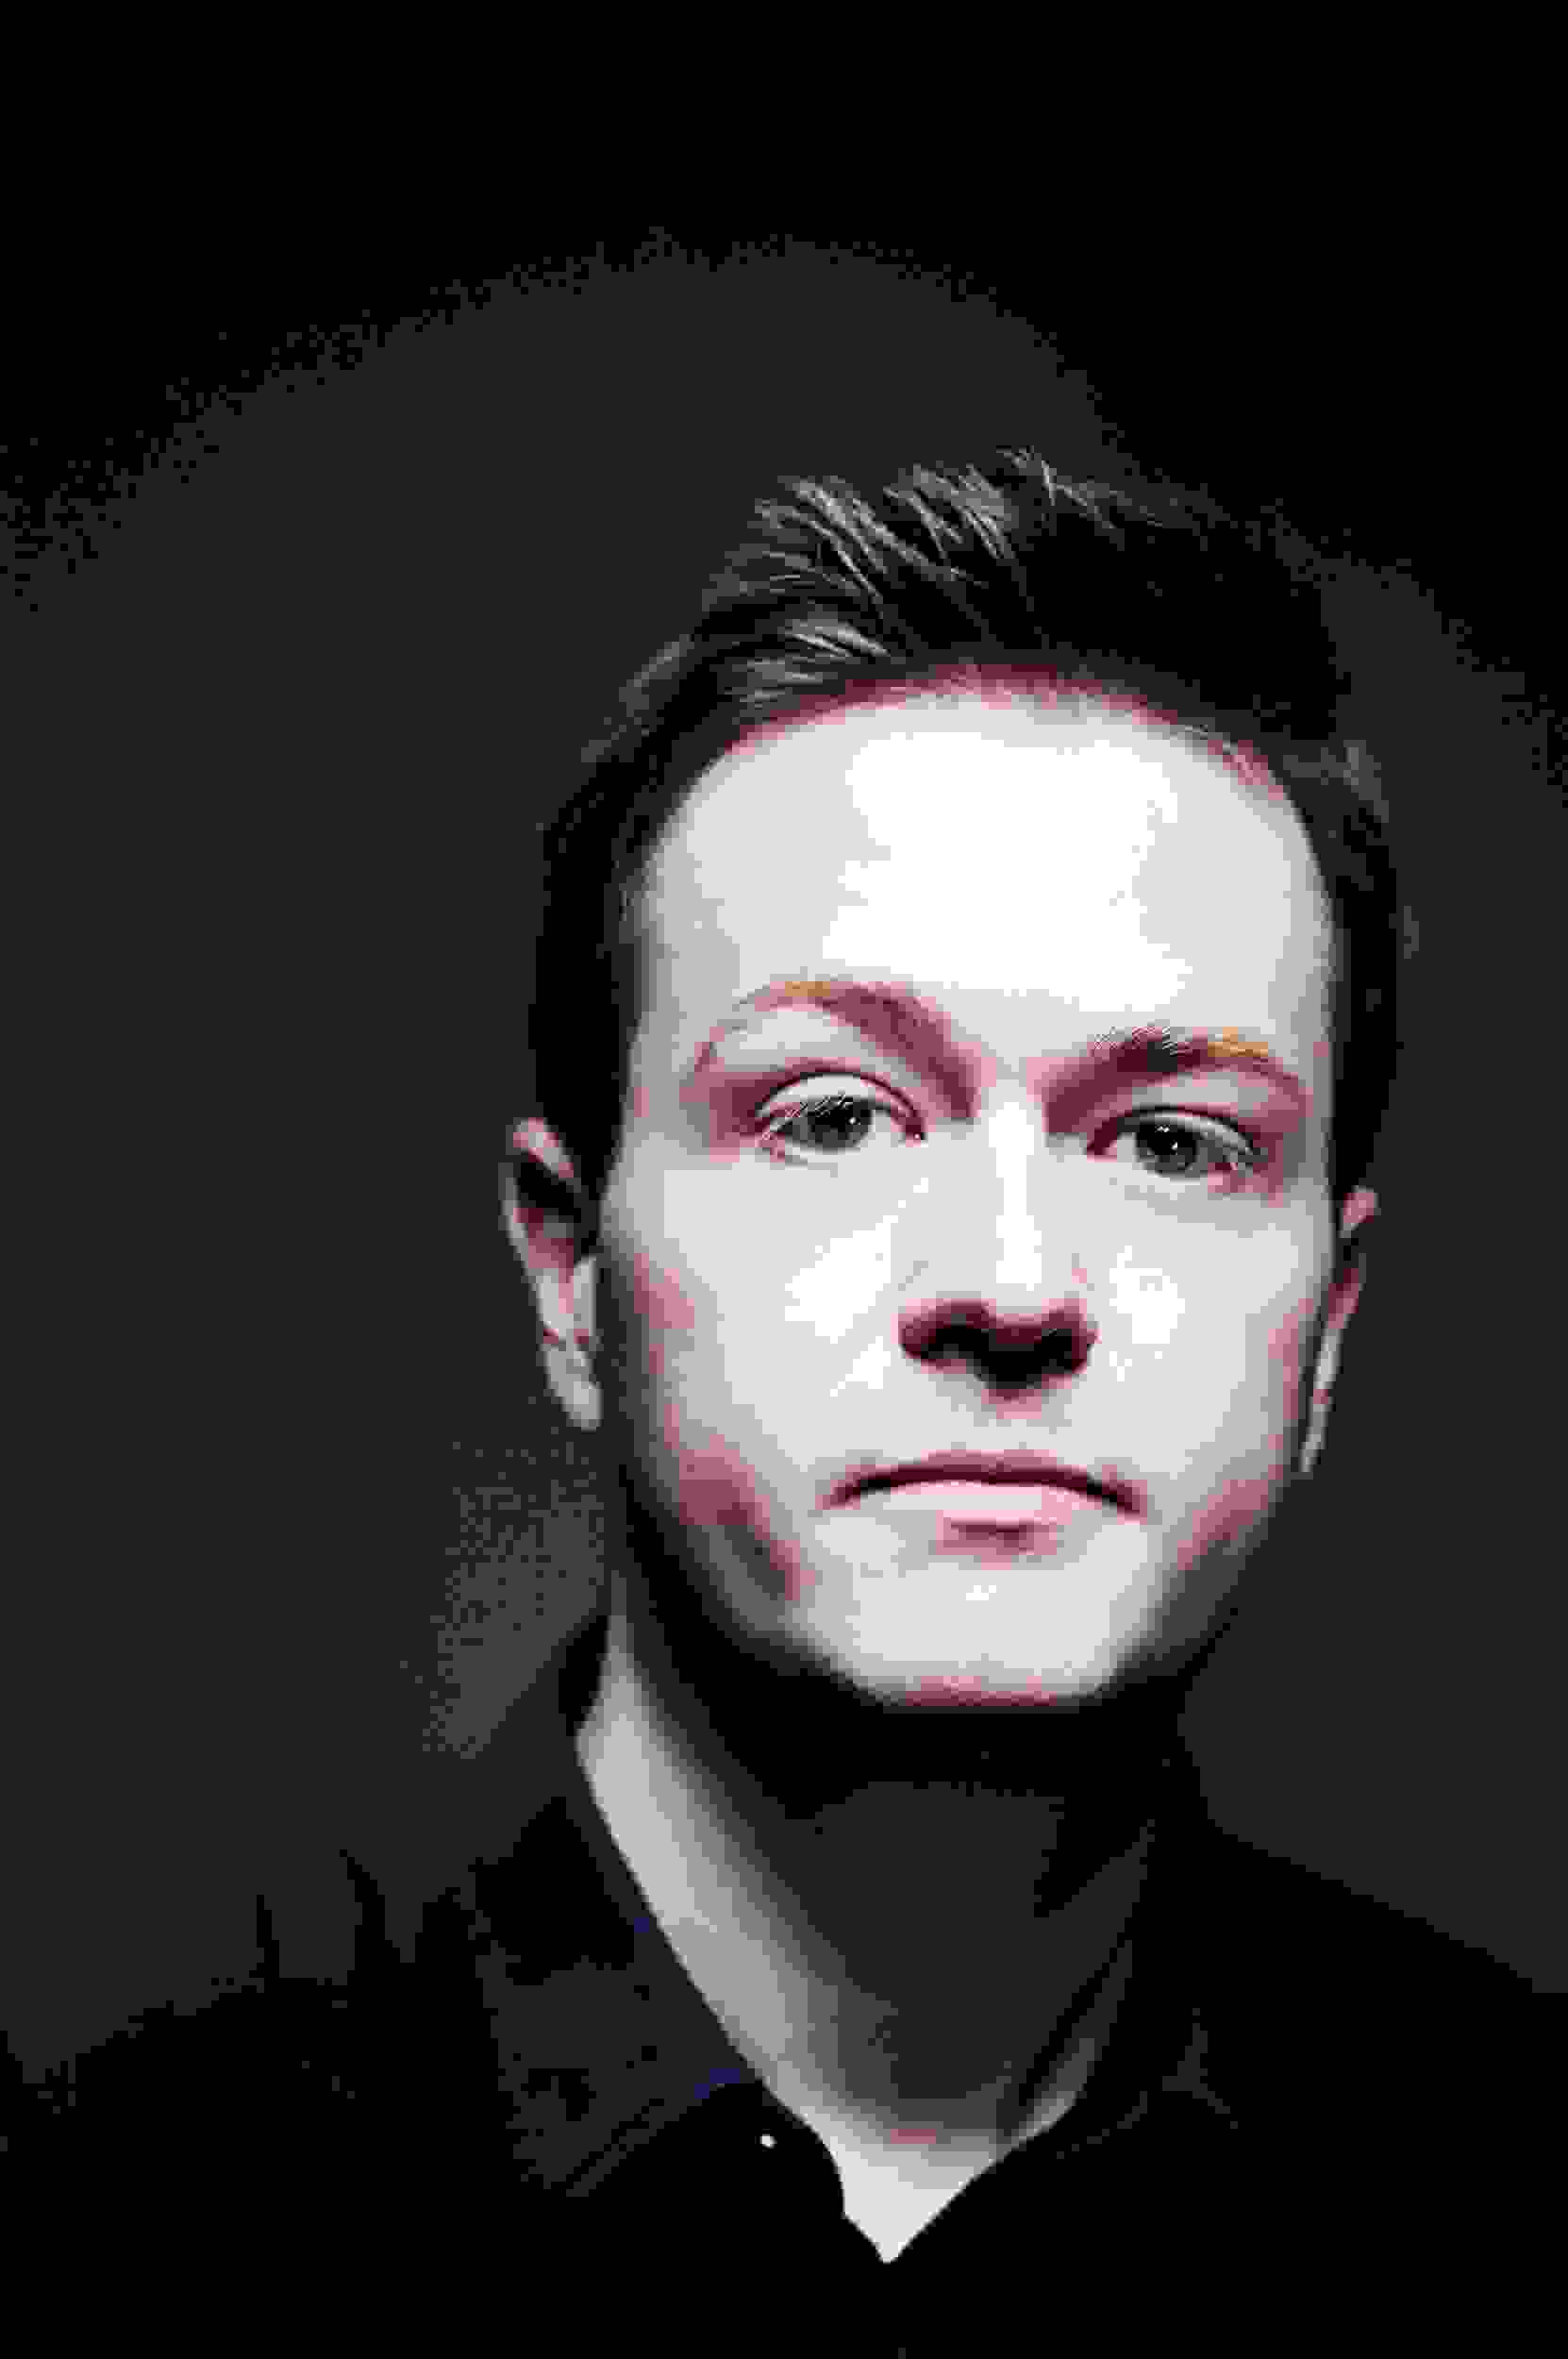 Johann Hari: On Our Depression, Anxiety and Addiction Crisis